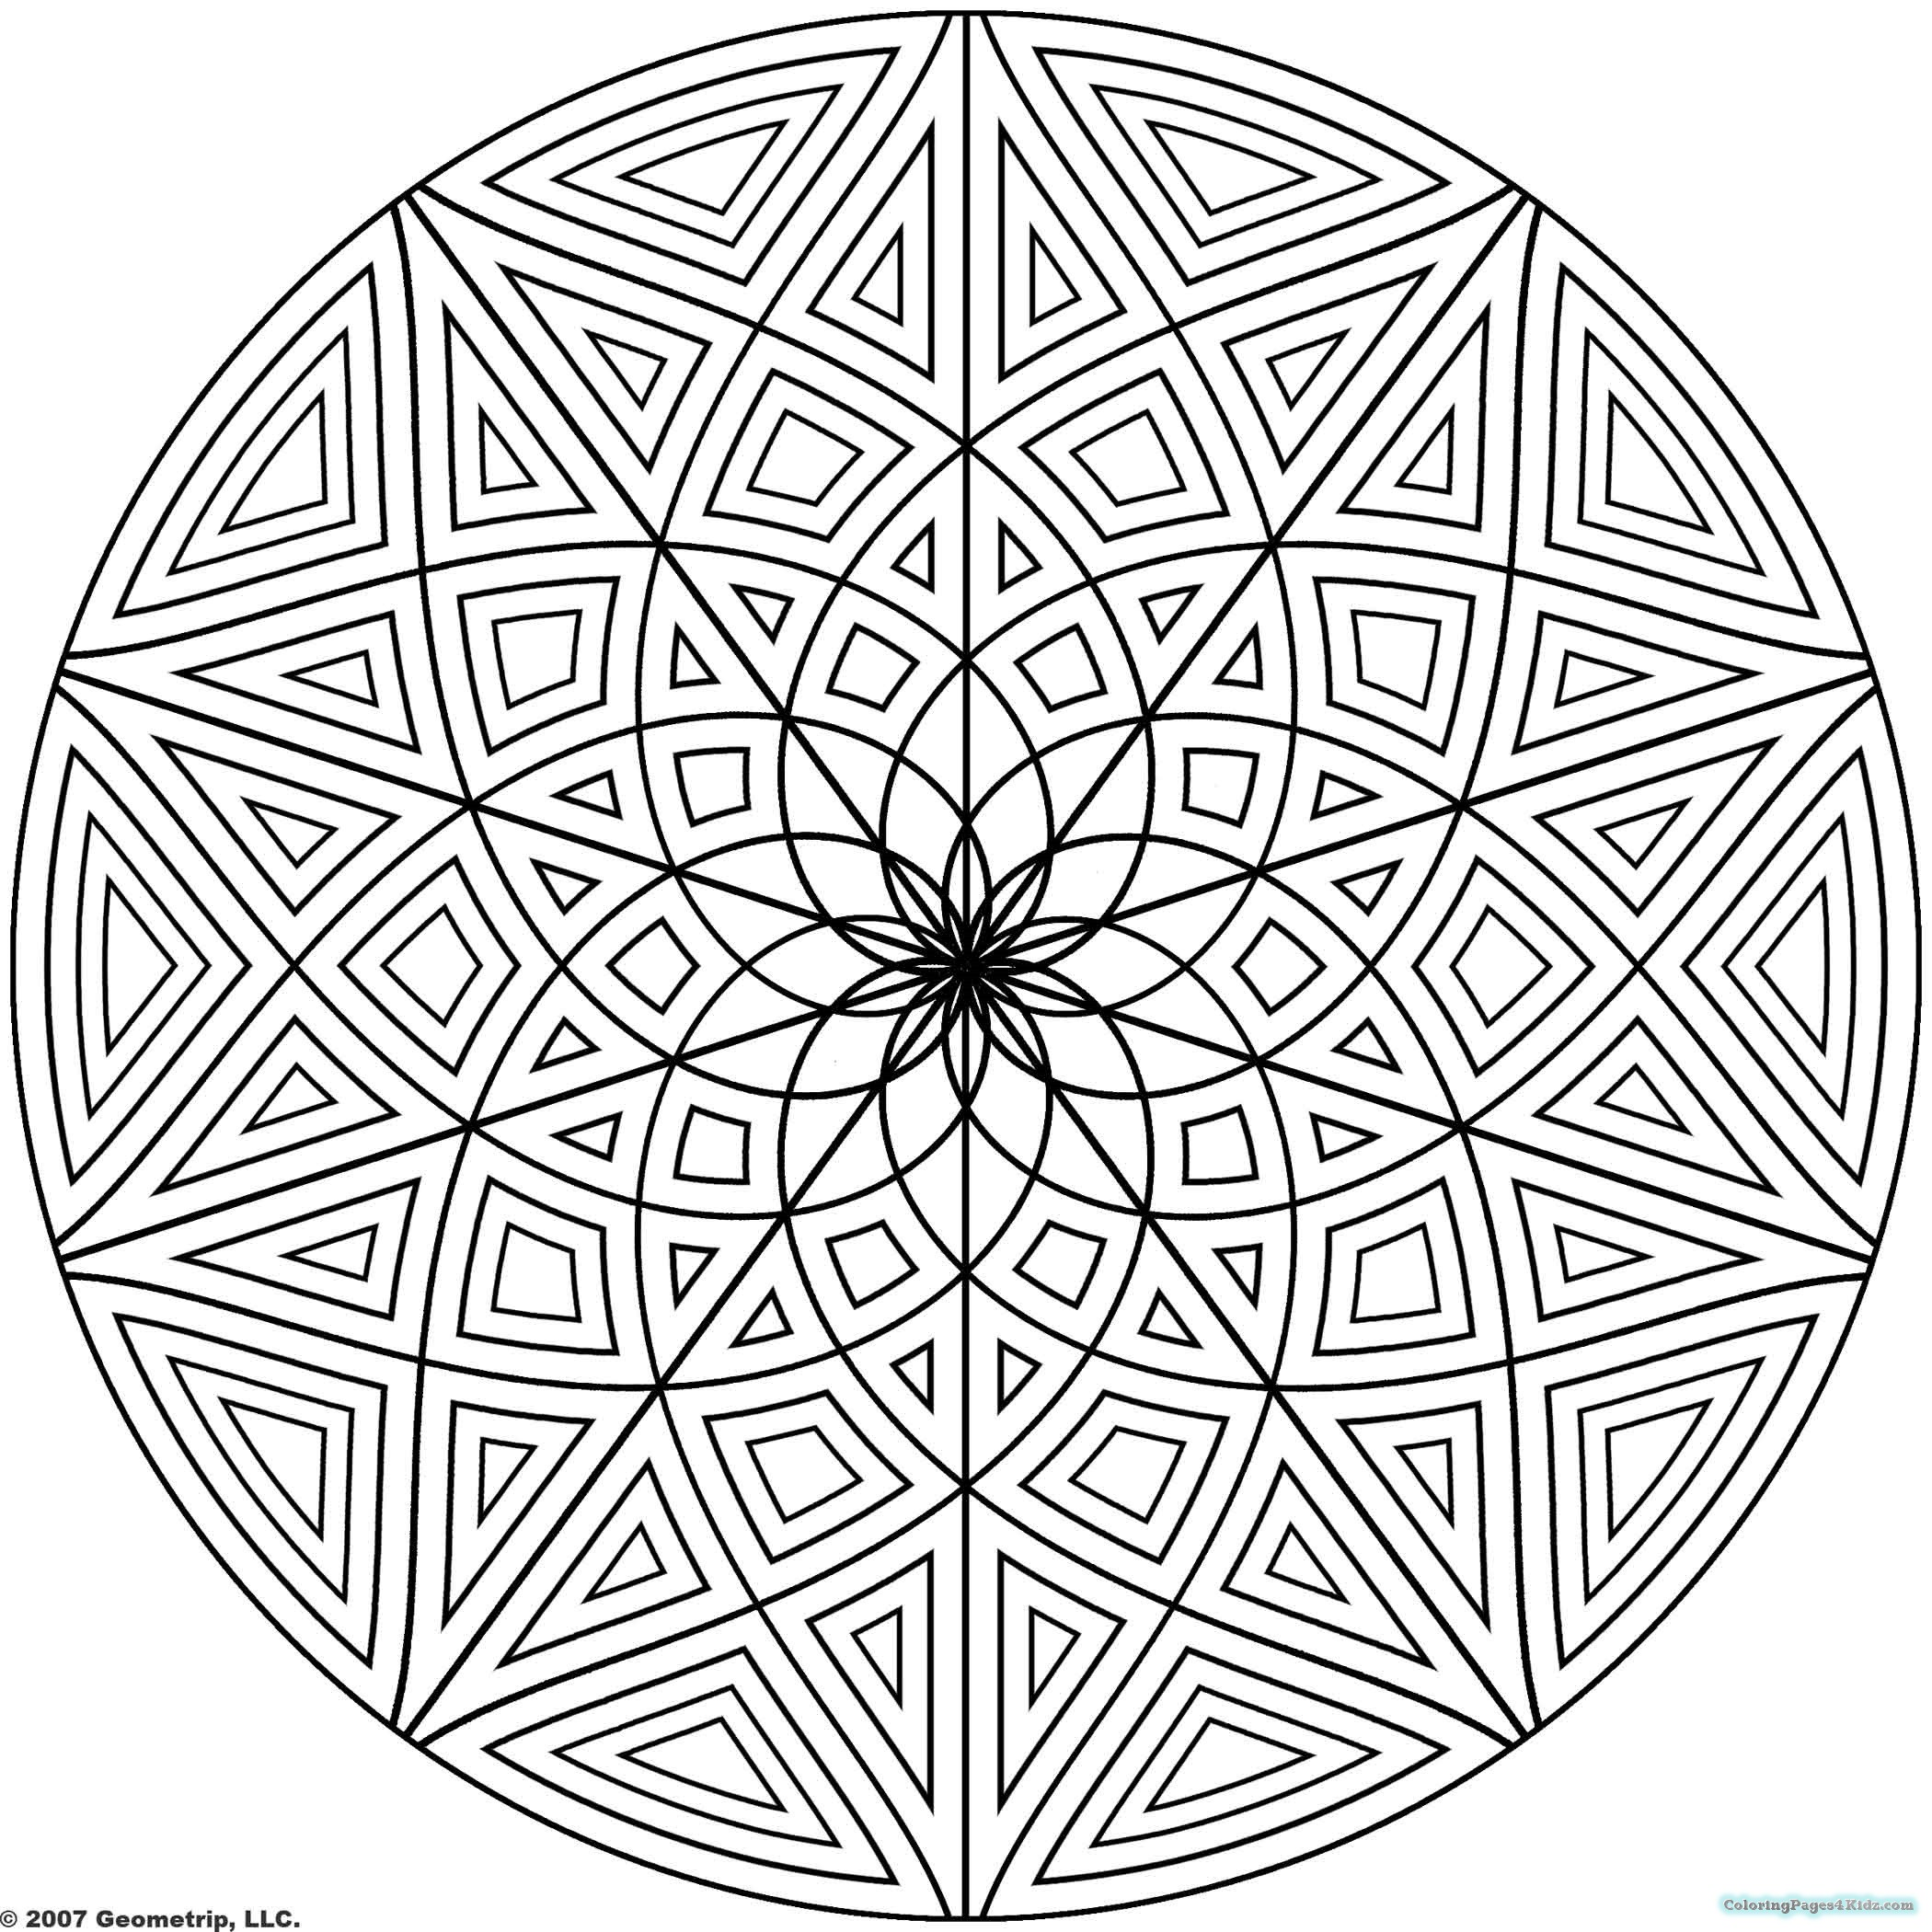 hard design coloring pages design hard coloring pages coloring pages for kids pages hard design coloring